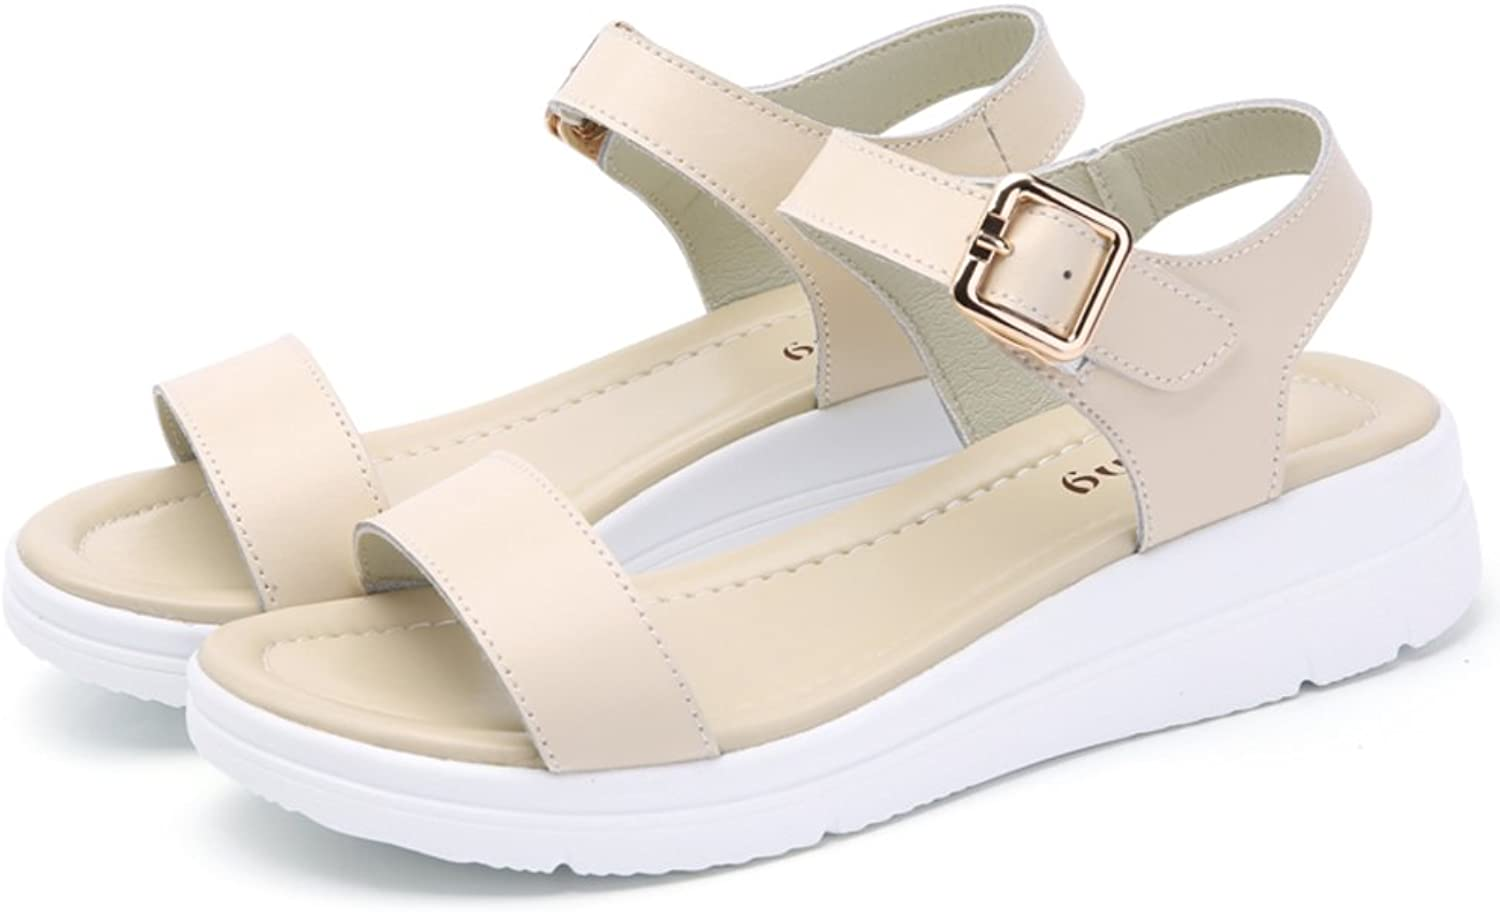 MET RXL Summer,Flat,Kitten Heels Lady,A Word with,Wedges,Casual Sandals